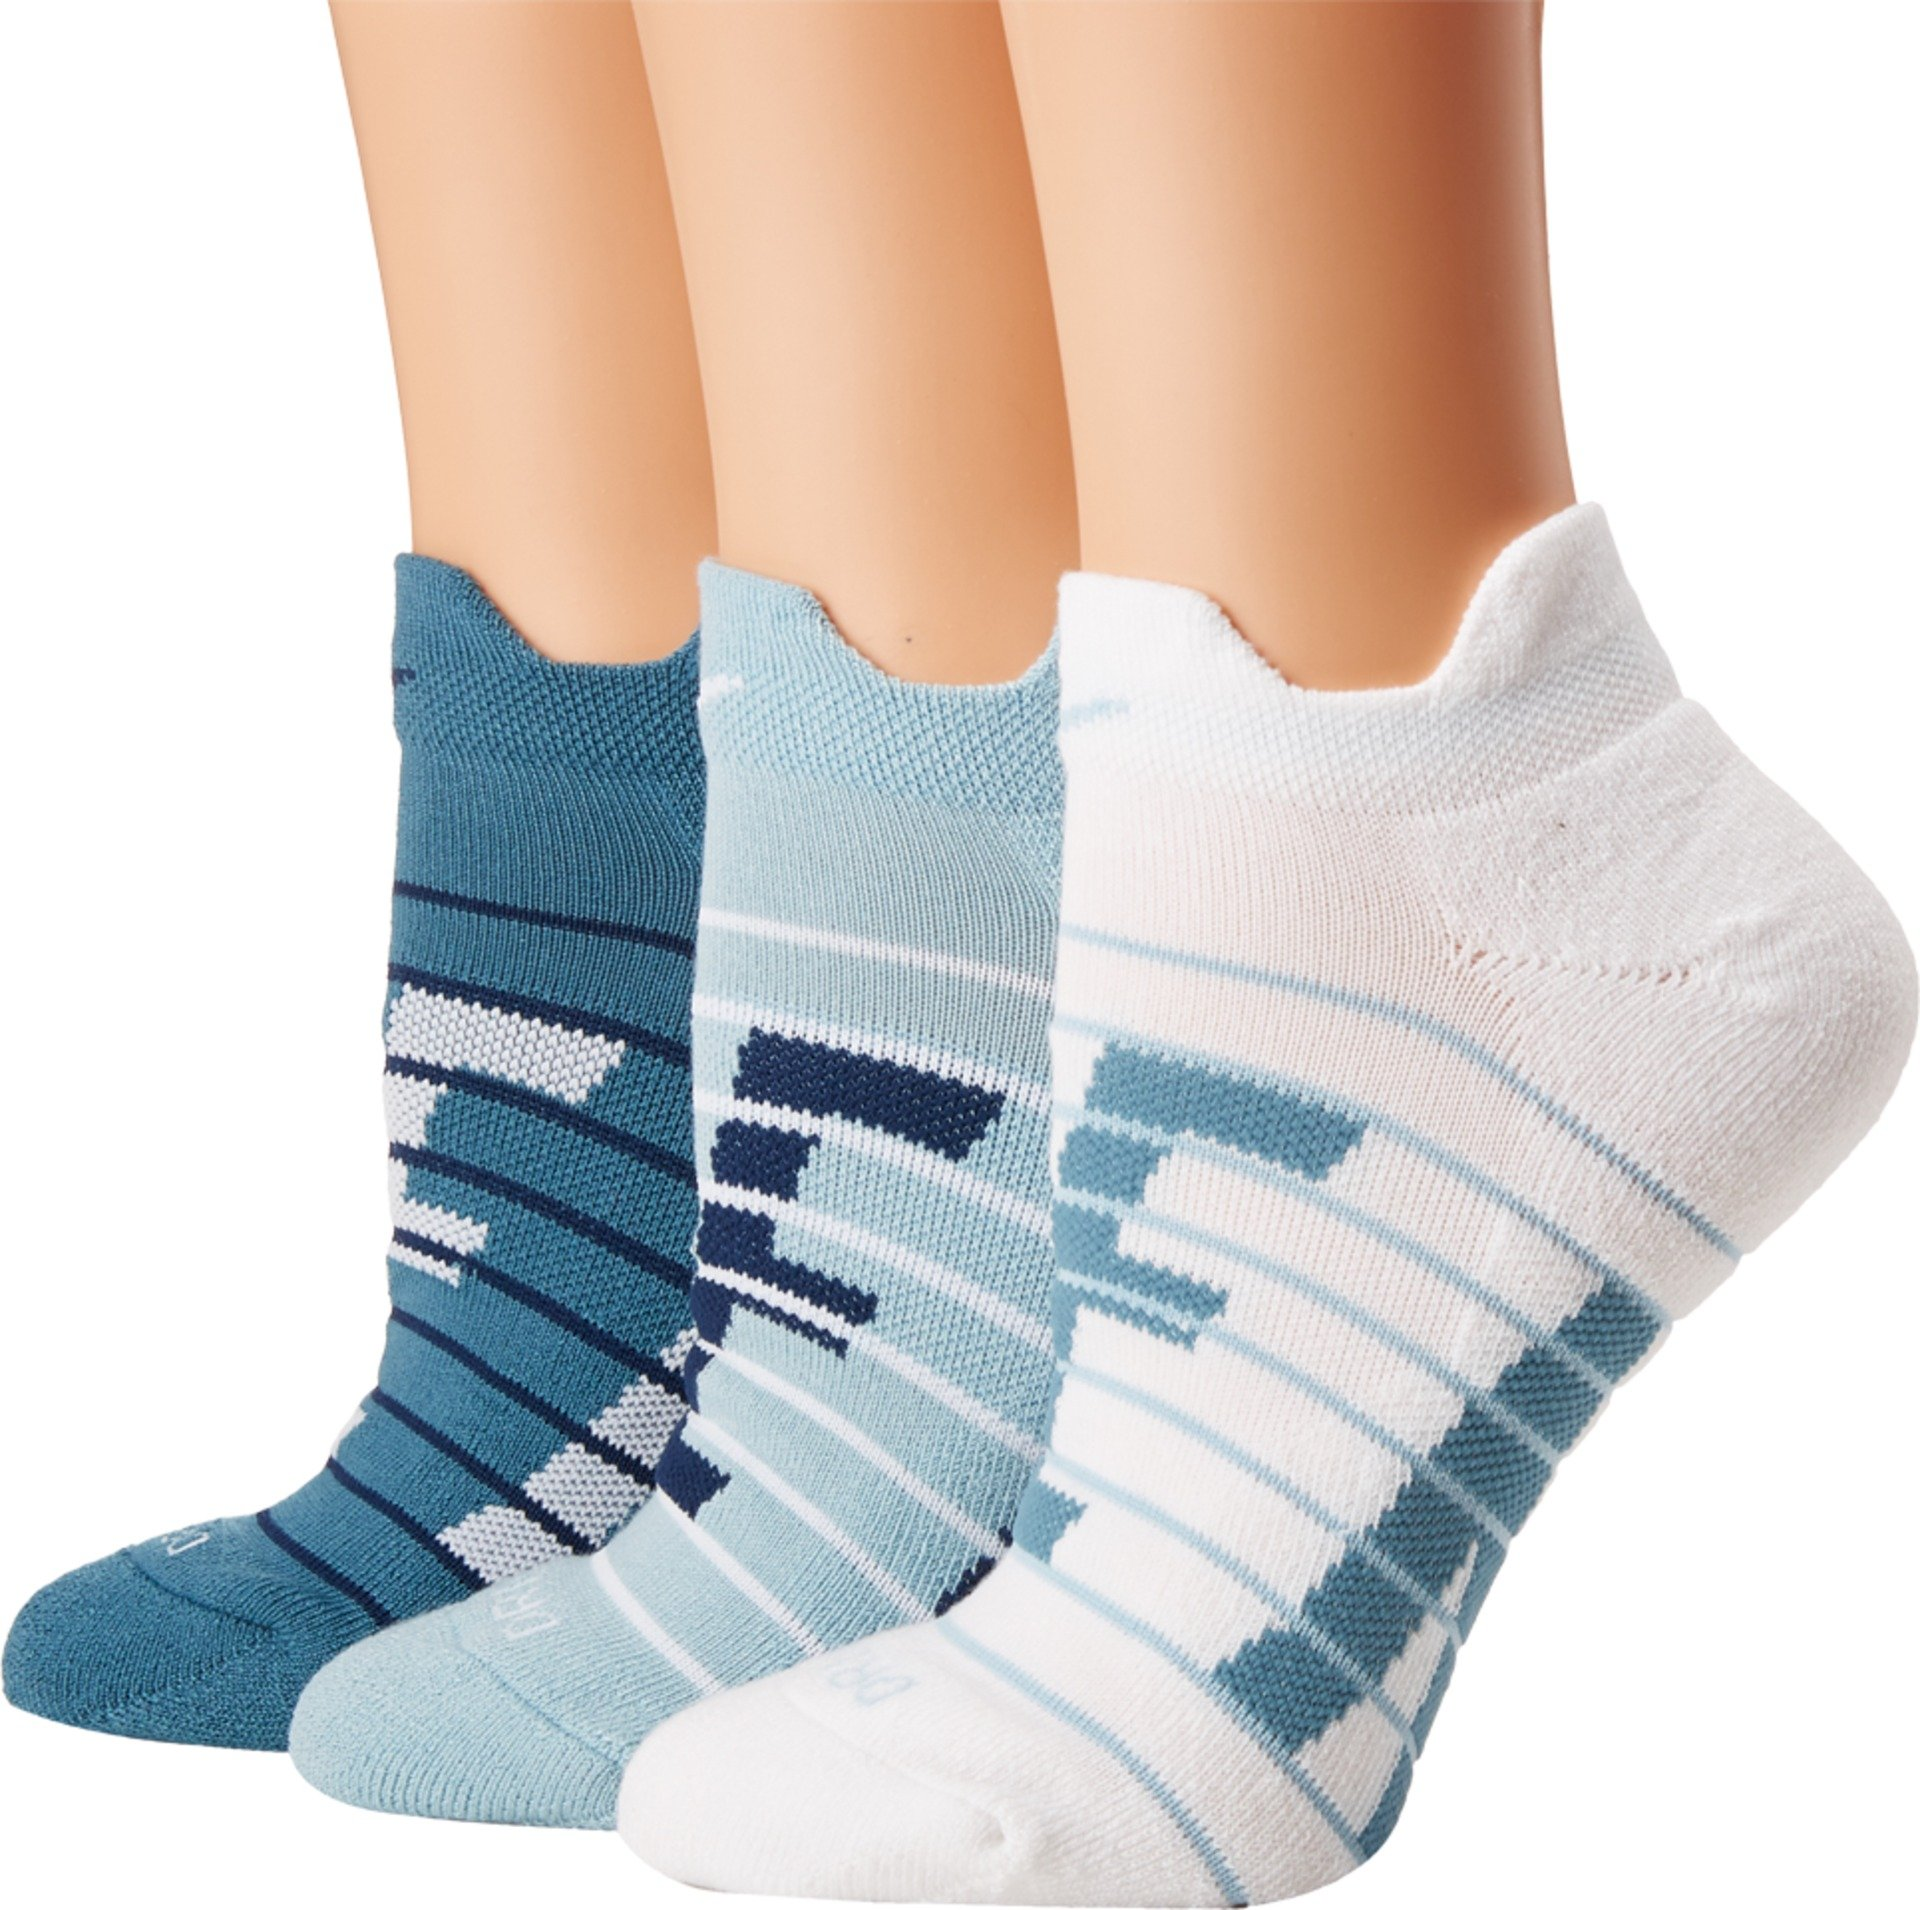 Nike Women's Dry Cushioned Low Training Socks 3-Pack (Multicolor BLUE) by Nike